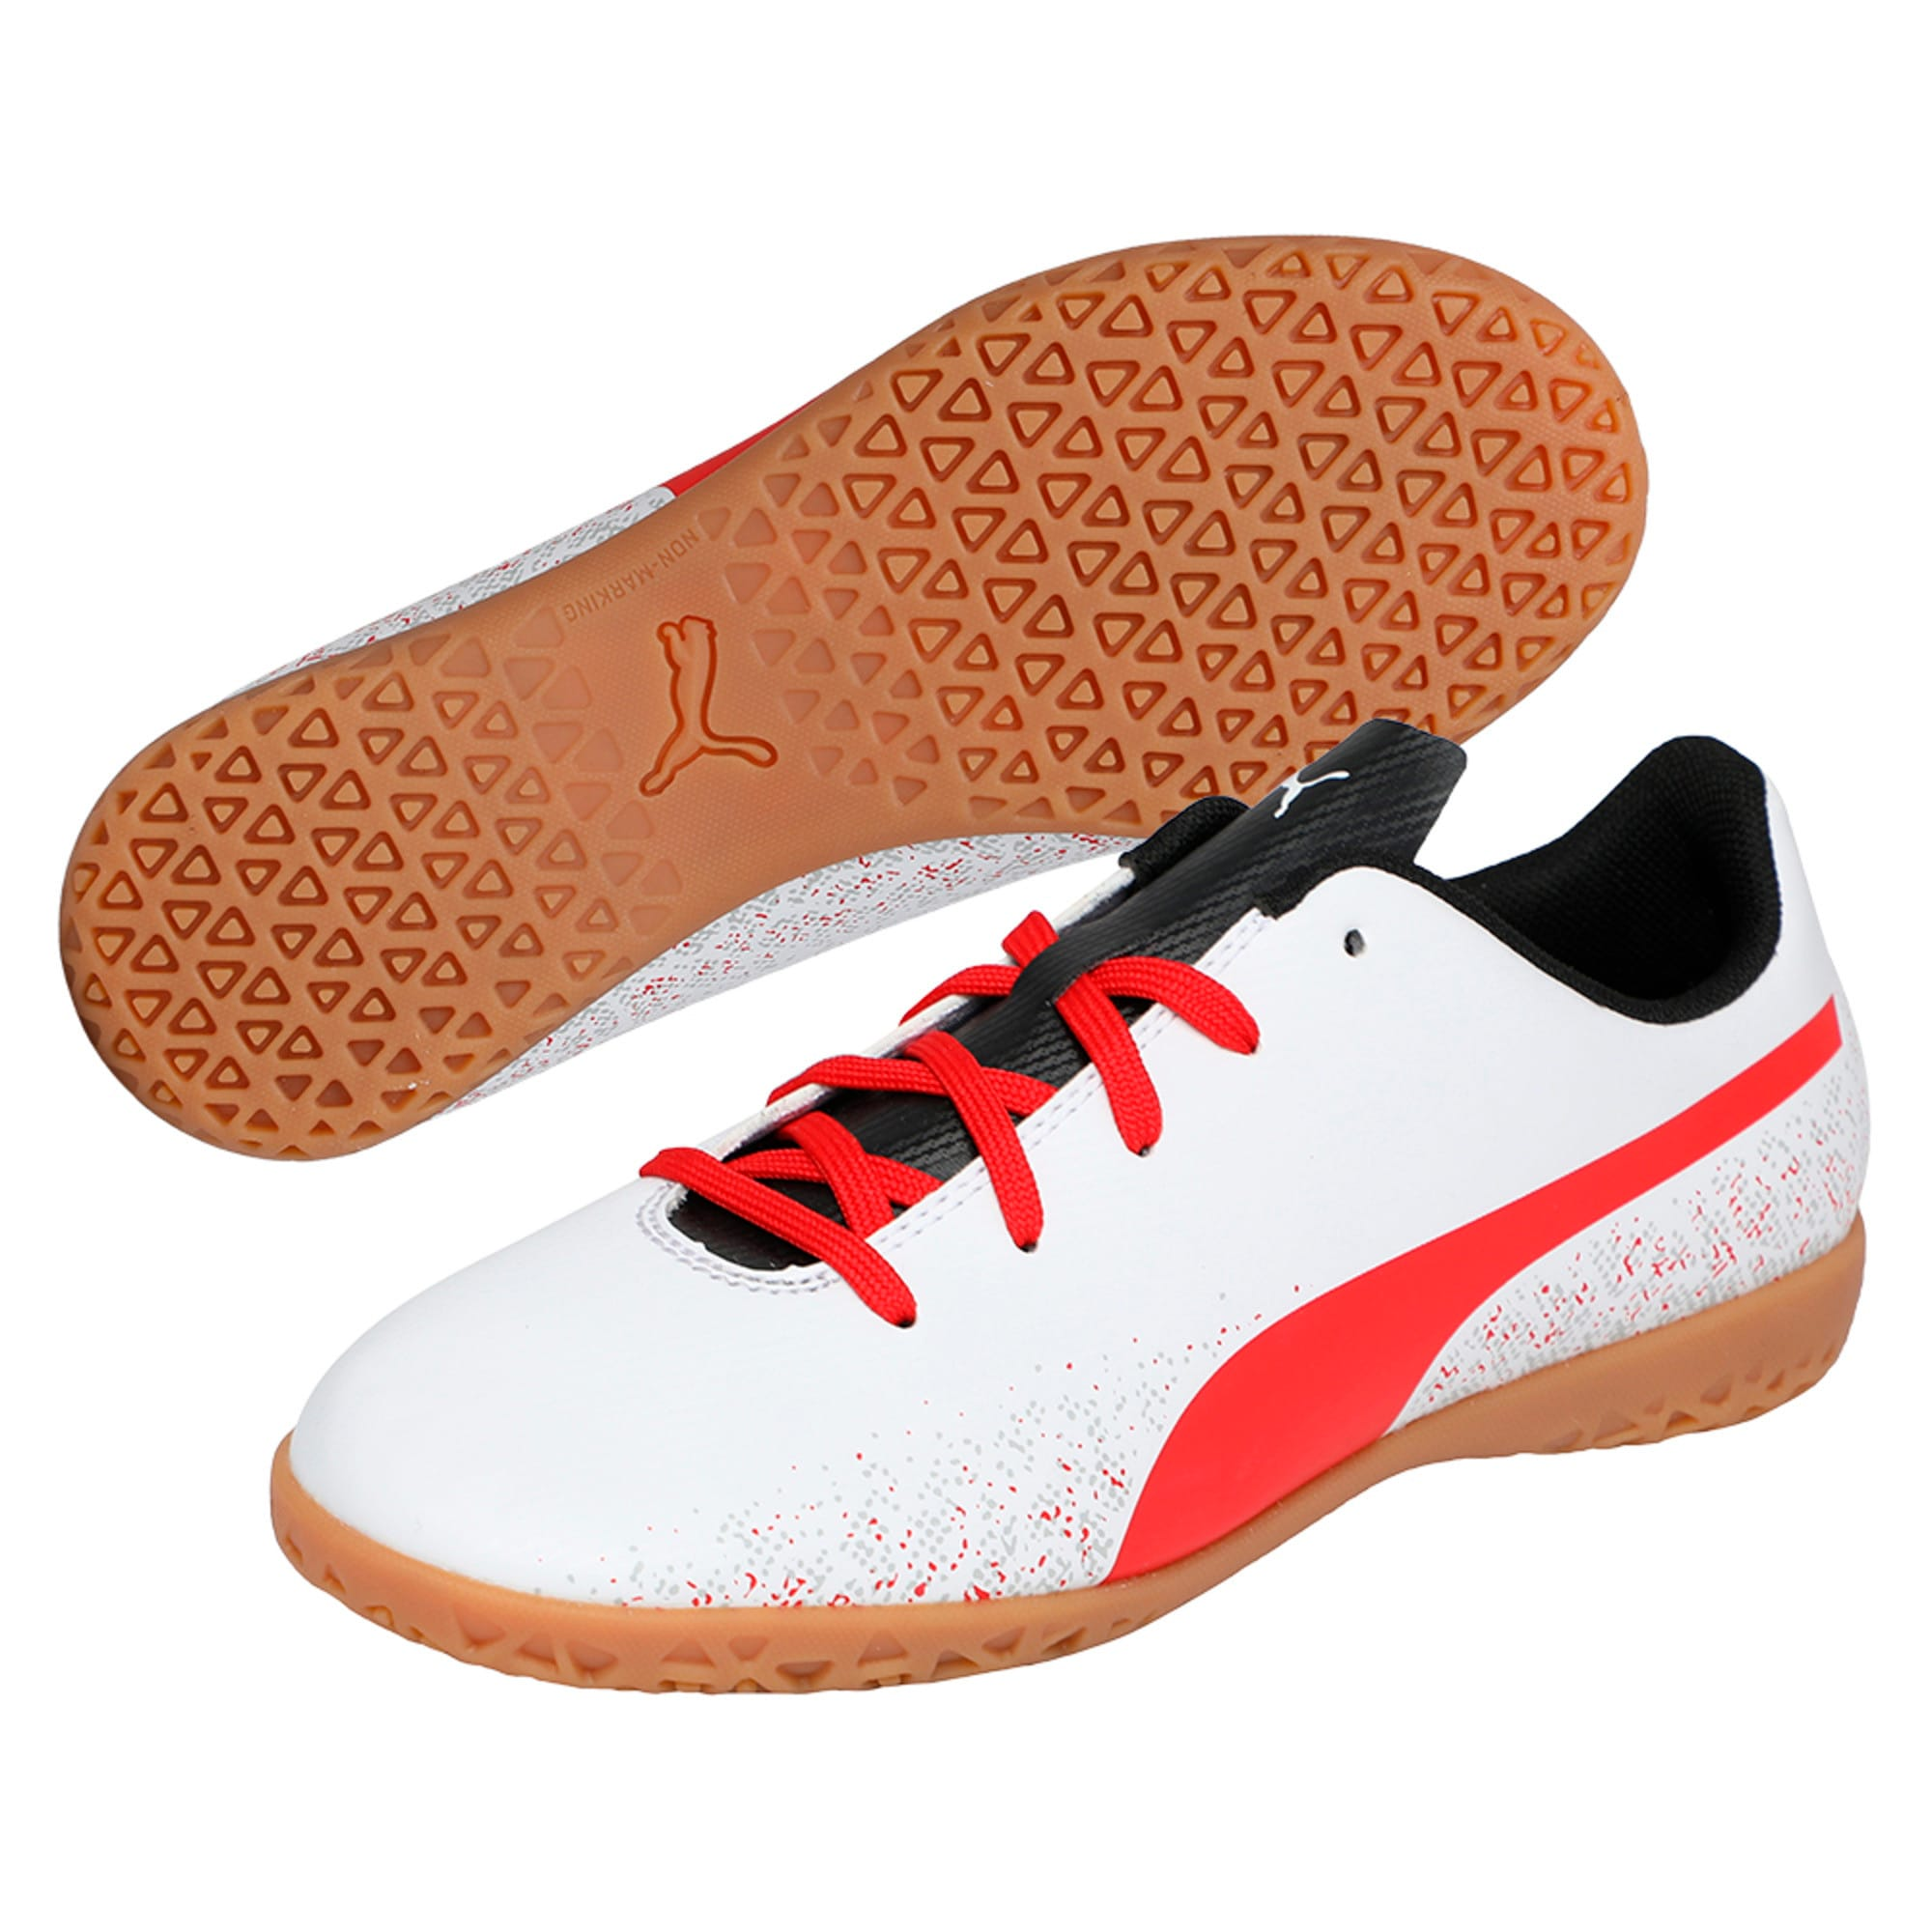 Thumbnail 2 of Truora IT Kids' Indoor Training Shoes, White-Flame Scarlet-Black, medium-IND